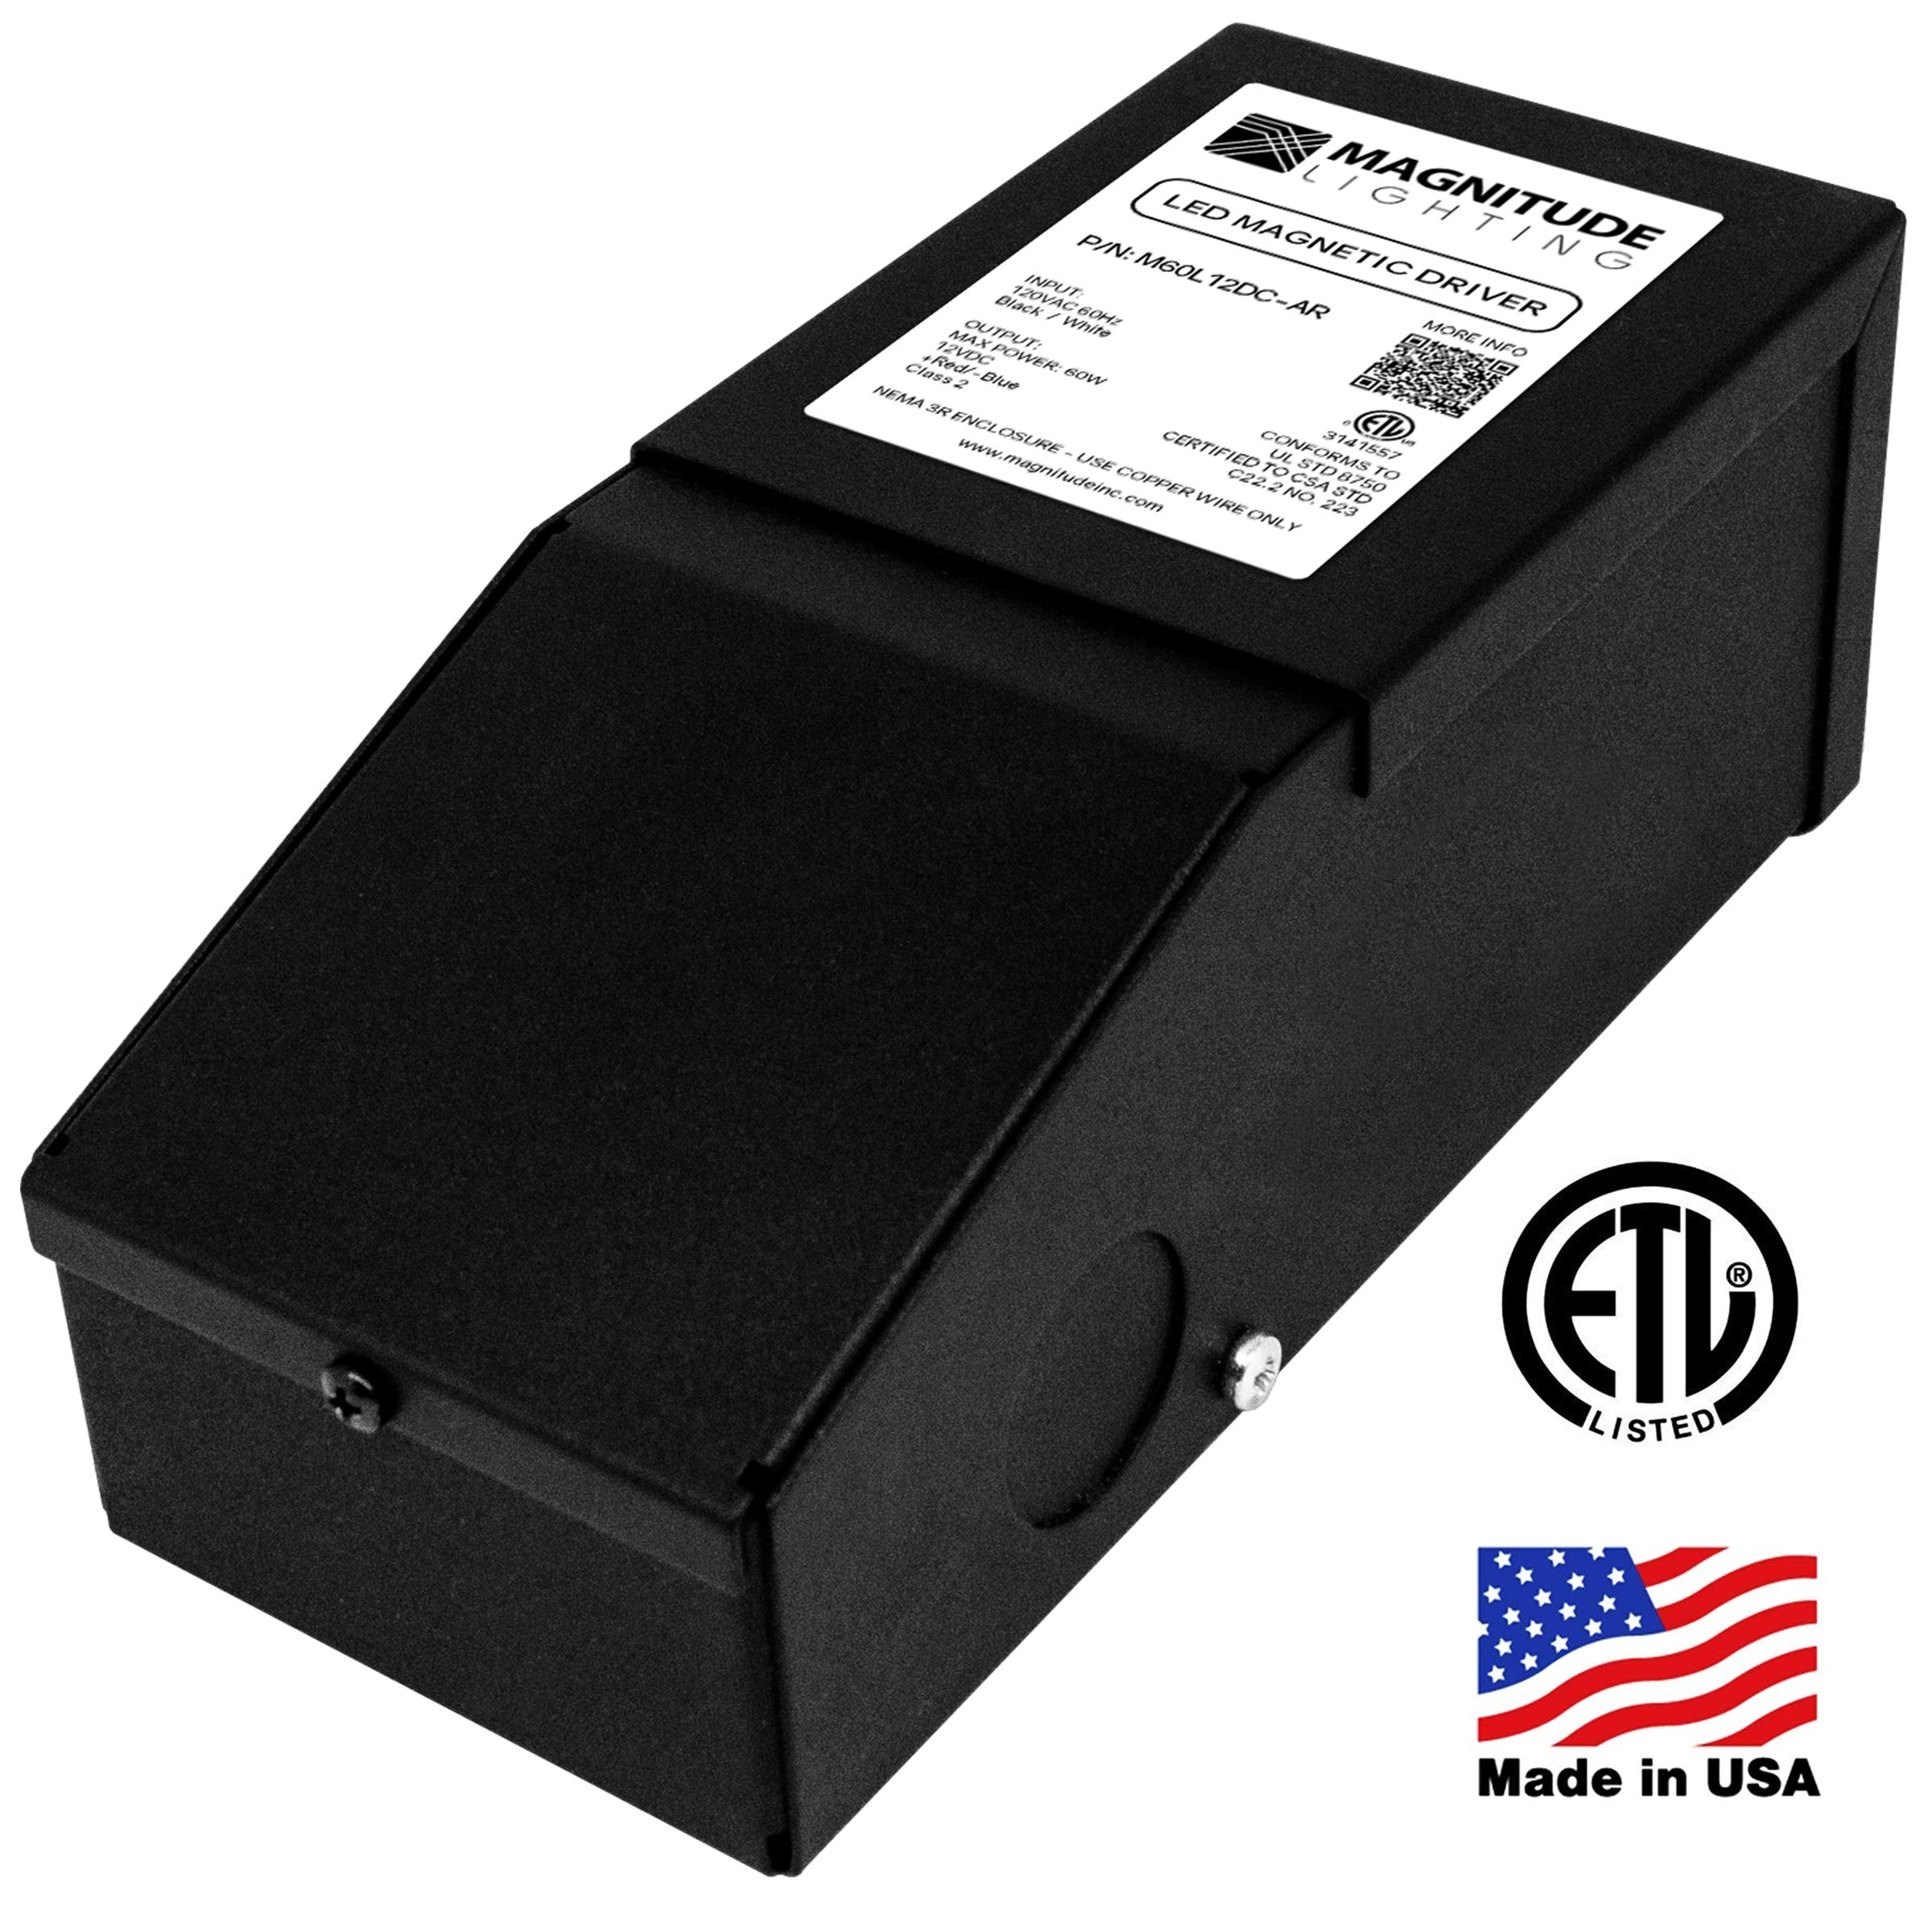 Magnitude Dimmable Driver, 60 Watt Magnetic LED Driver - 110V AC-12V DC Transformer. Made in the USA. Compatible with Lutron and Leviton for LED Strip Lights, Constant Voltage LED Products by HitLights (Image #1)